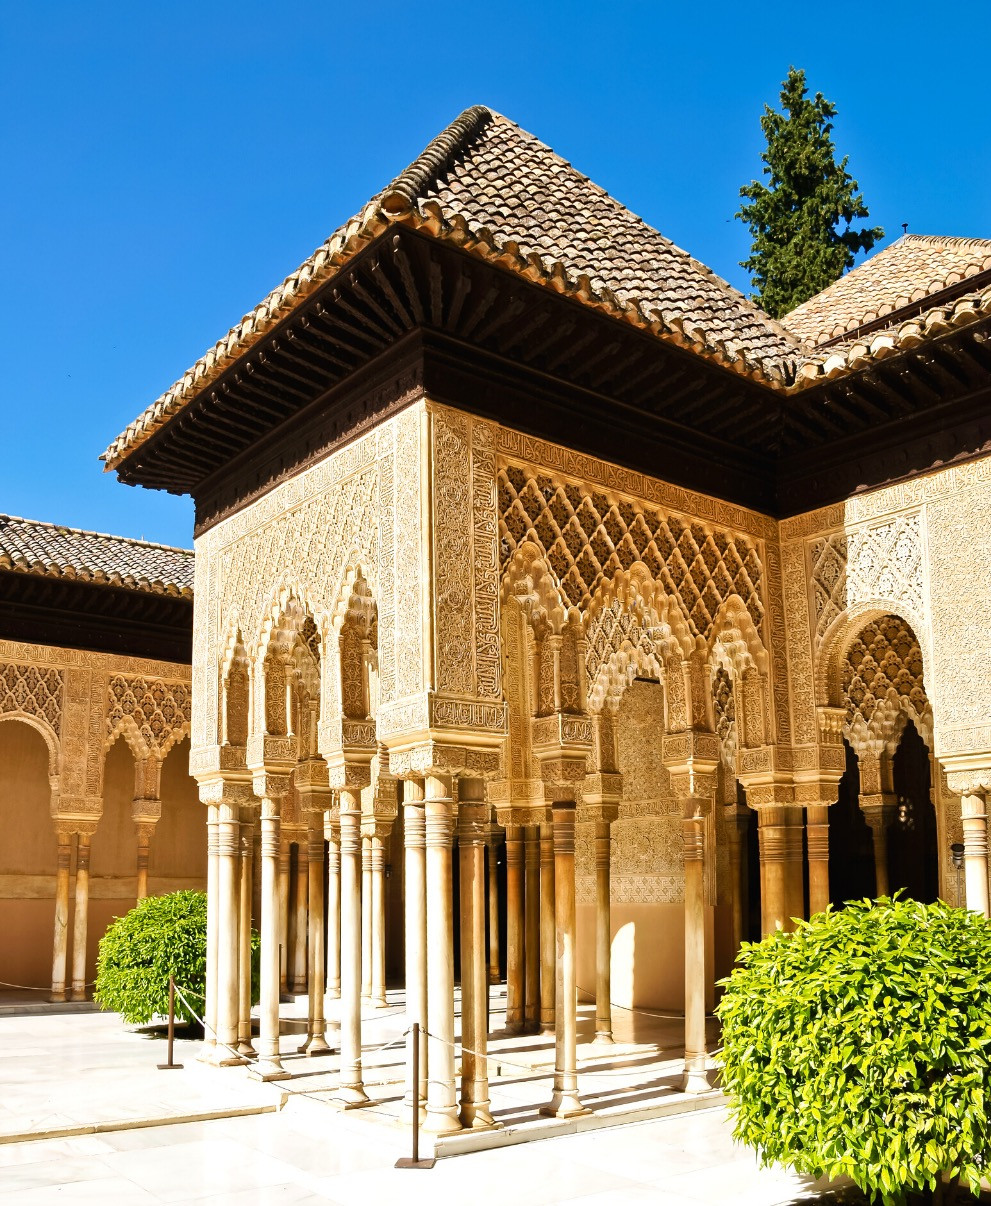 Courtyard of the Lions in the Alhambra